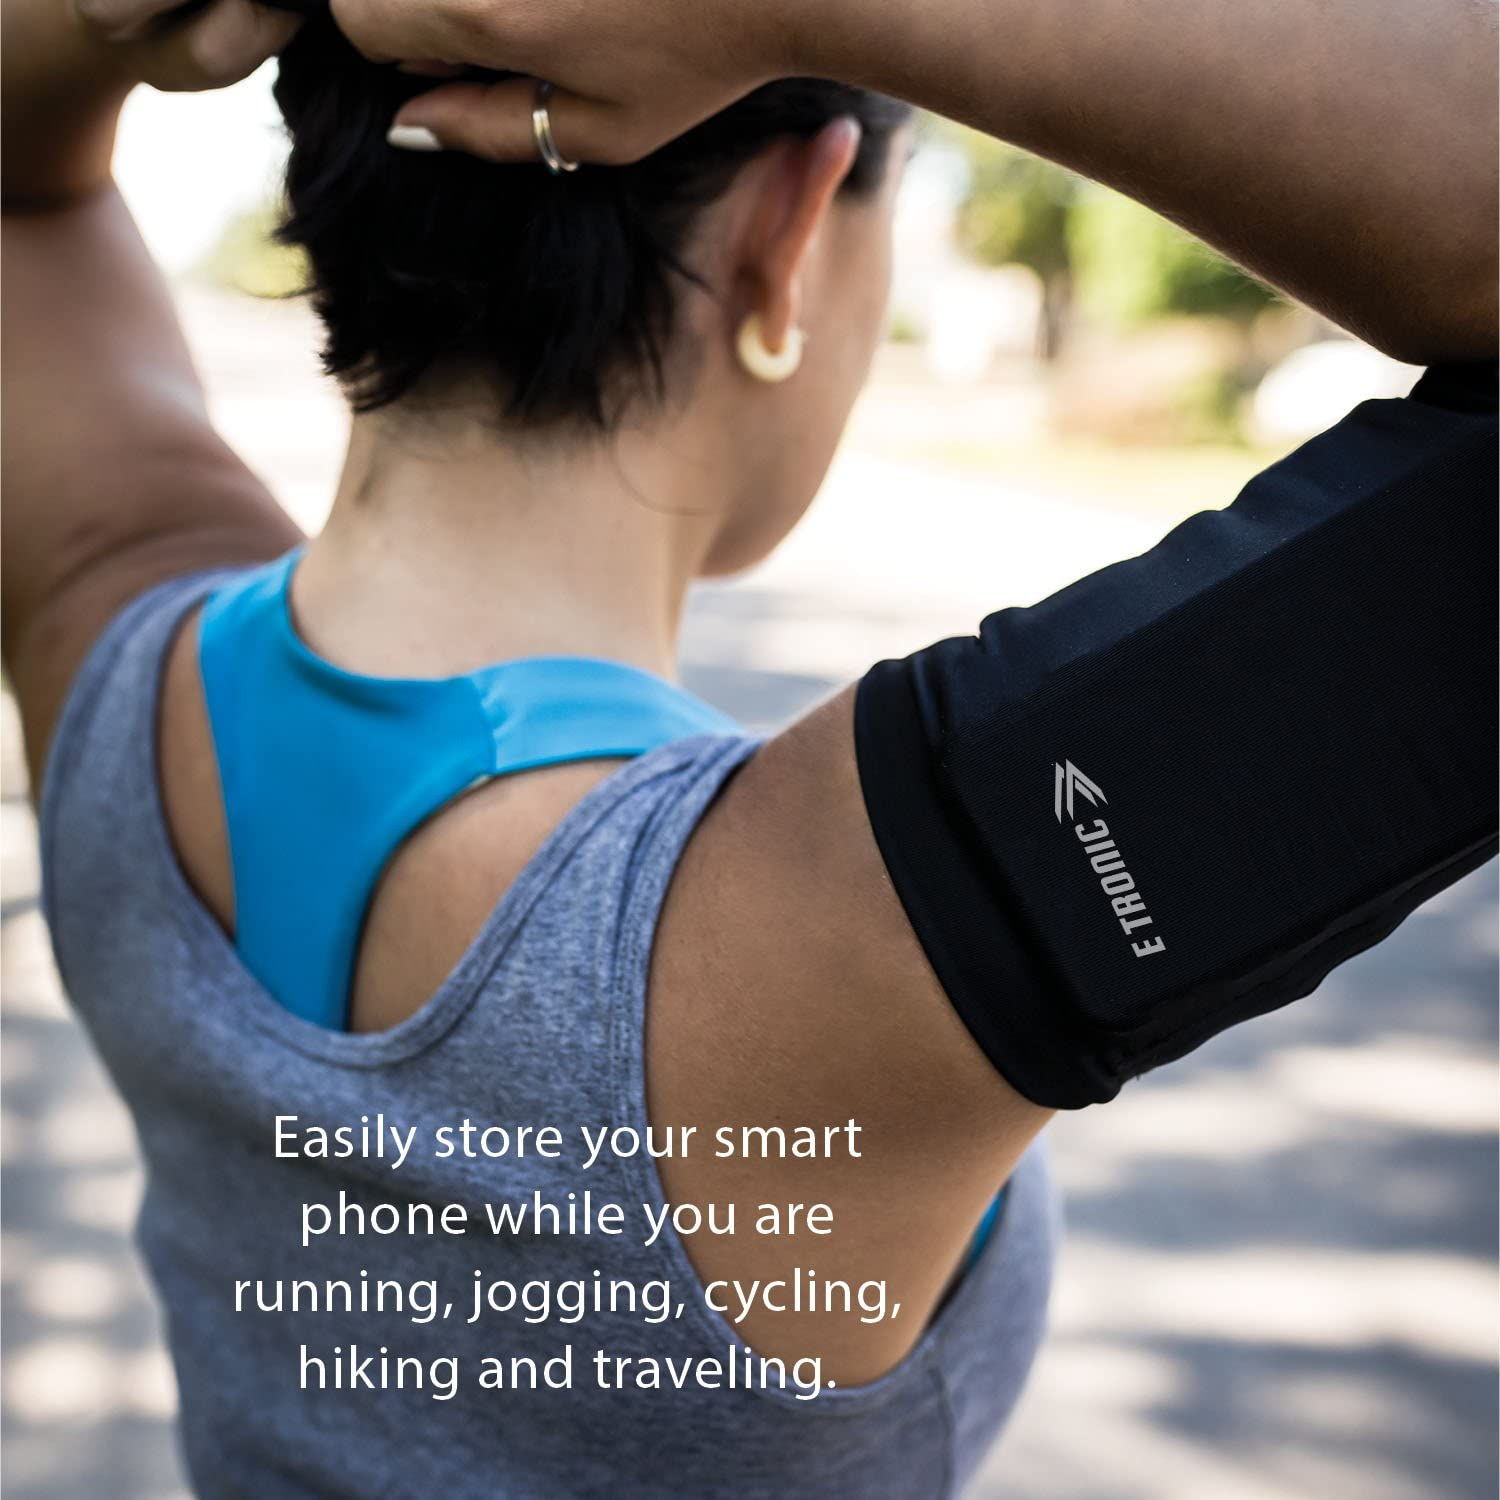 5-best-armbands-for-iphone-12-pro-pro-max-armbands-for-running_herstylecode